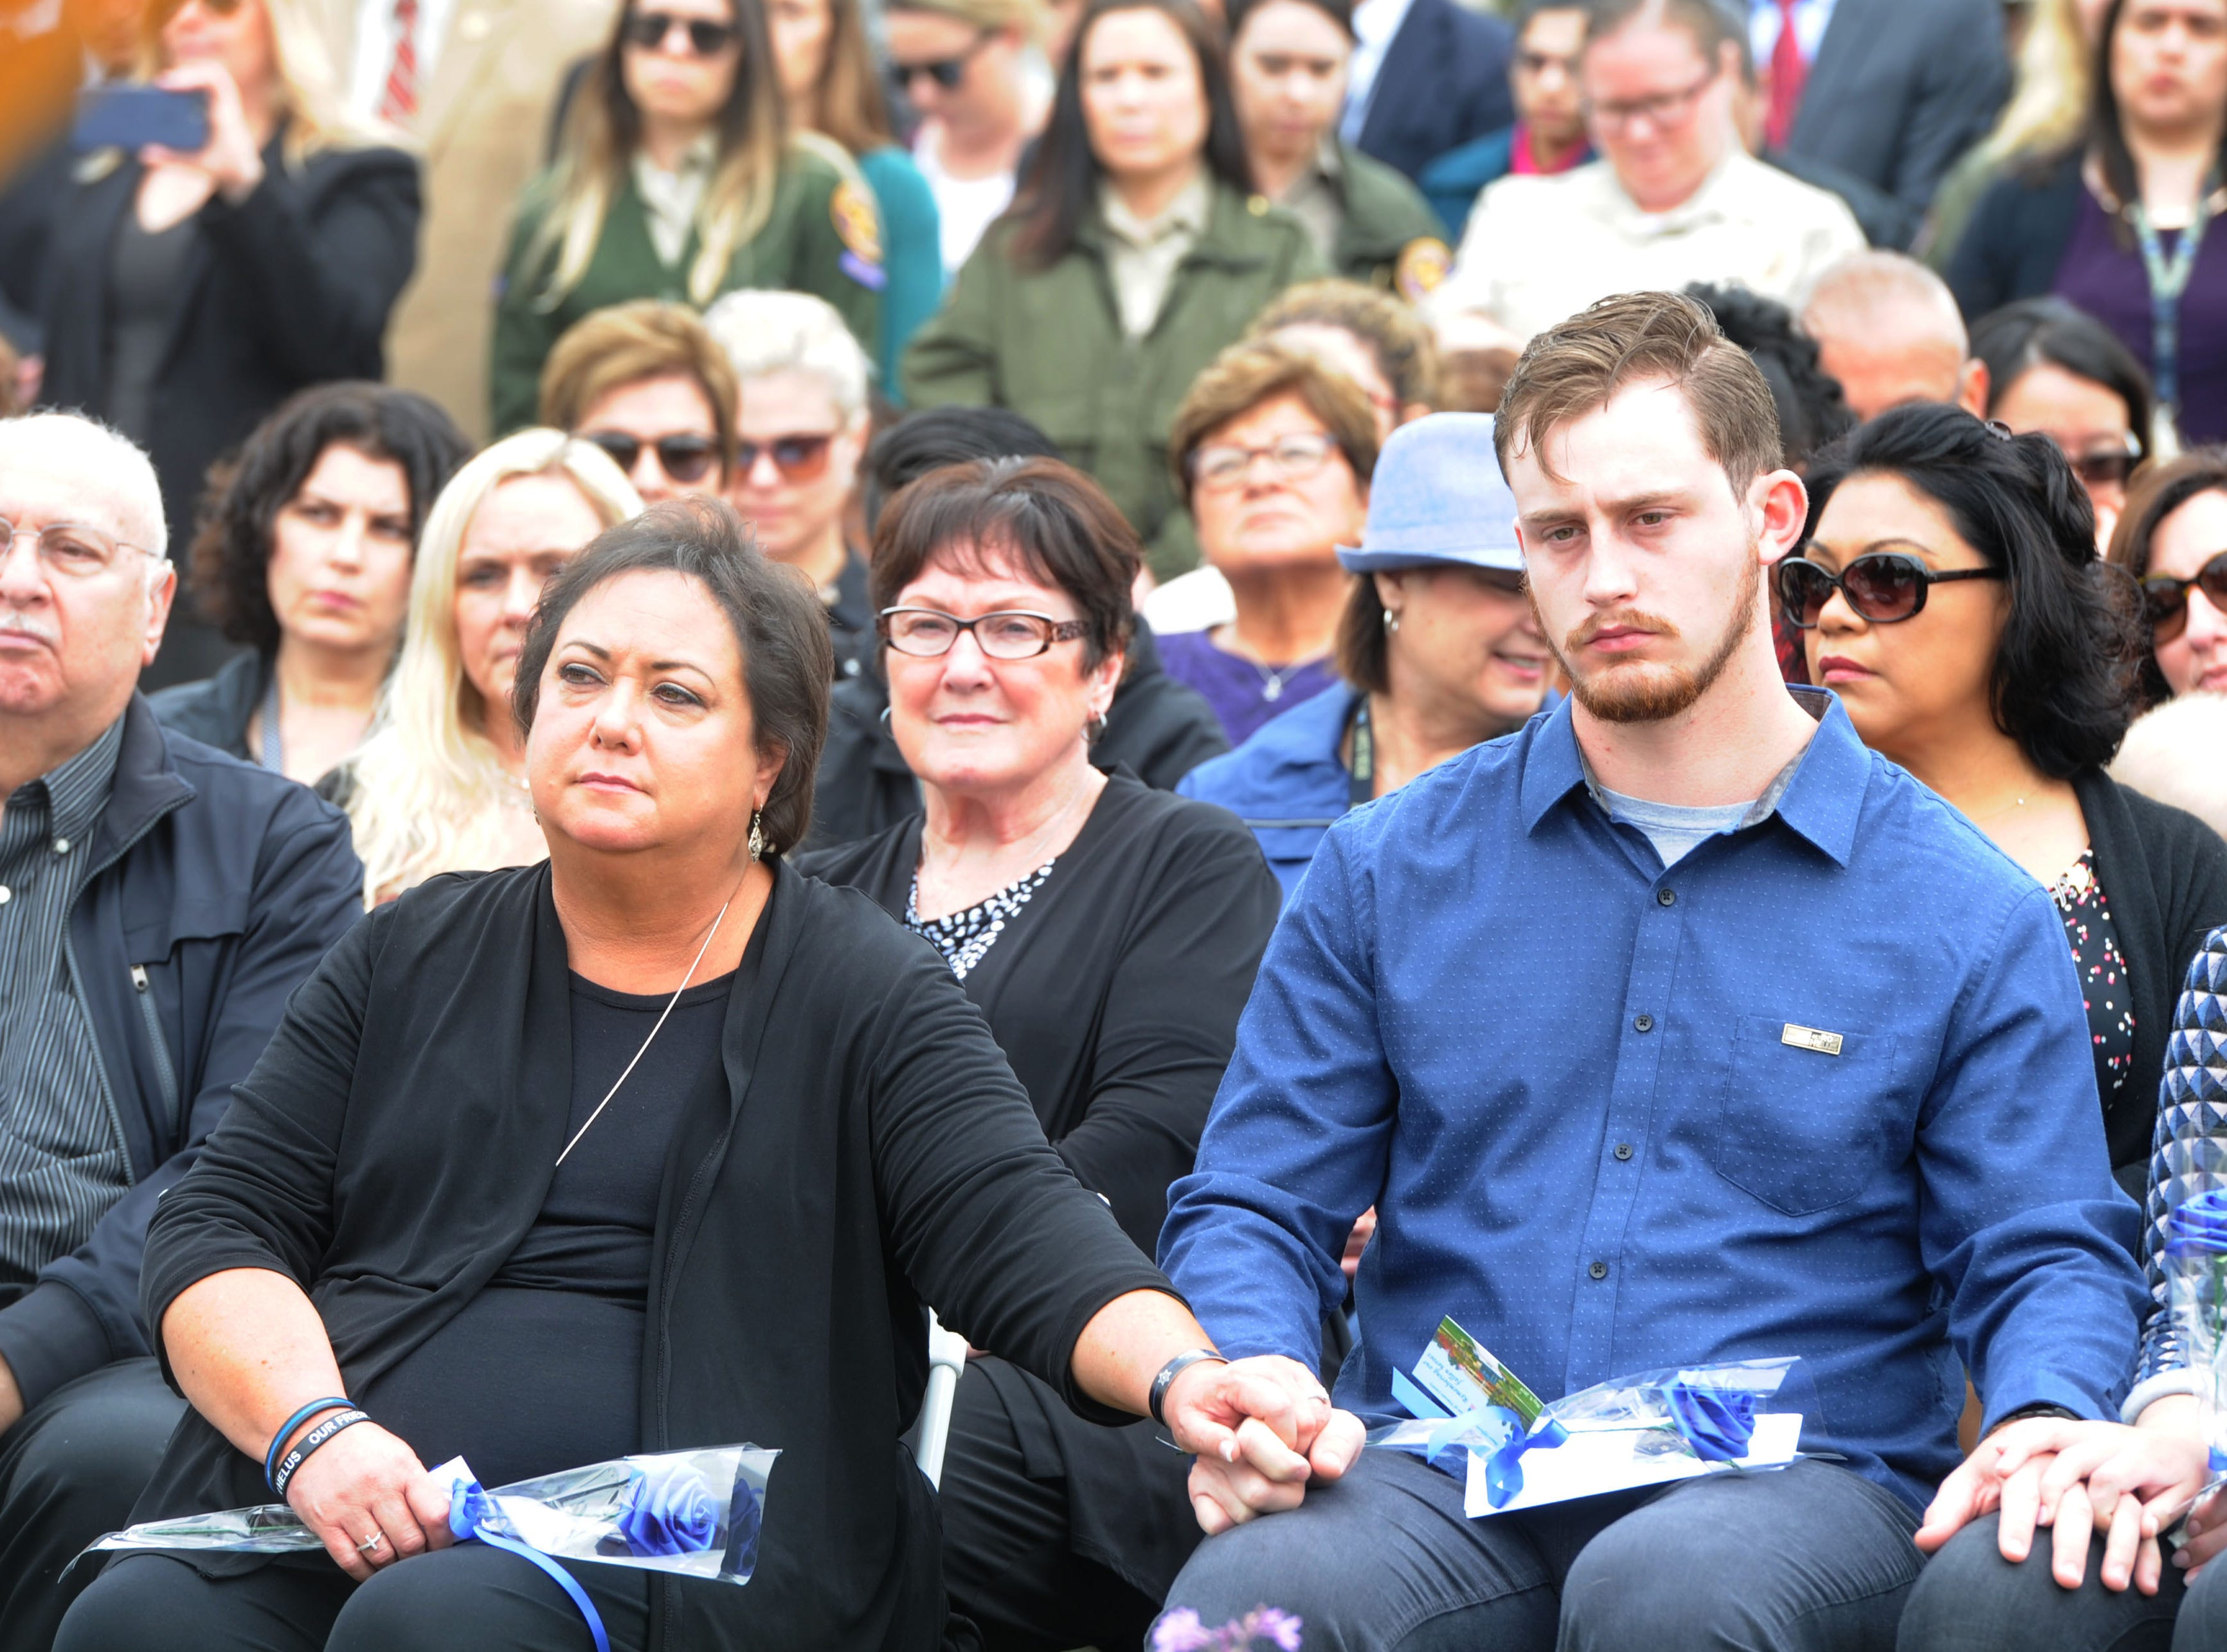 Sheriff's Sgt. Ron Helus' widow, Karen, and his son, Jordan, attended the Ventura County Peace Officers Memorial ceremony at the Ventura County Government Center.